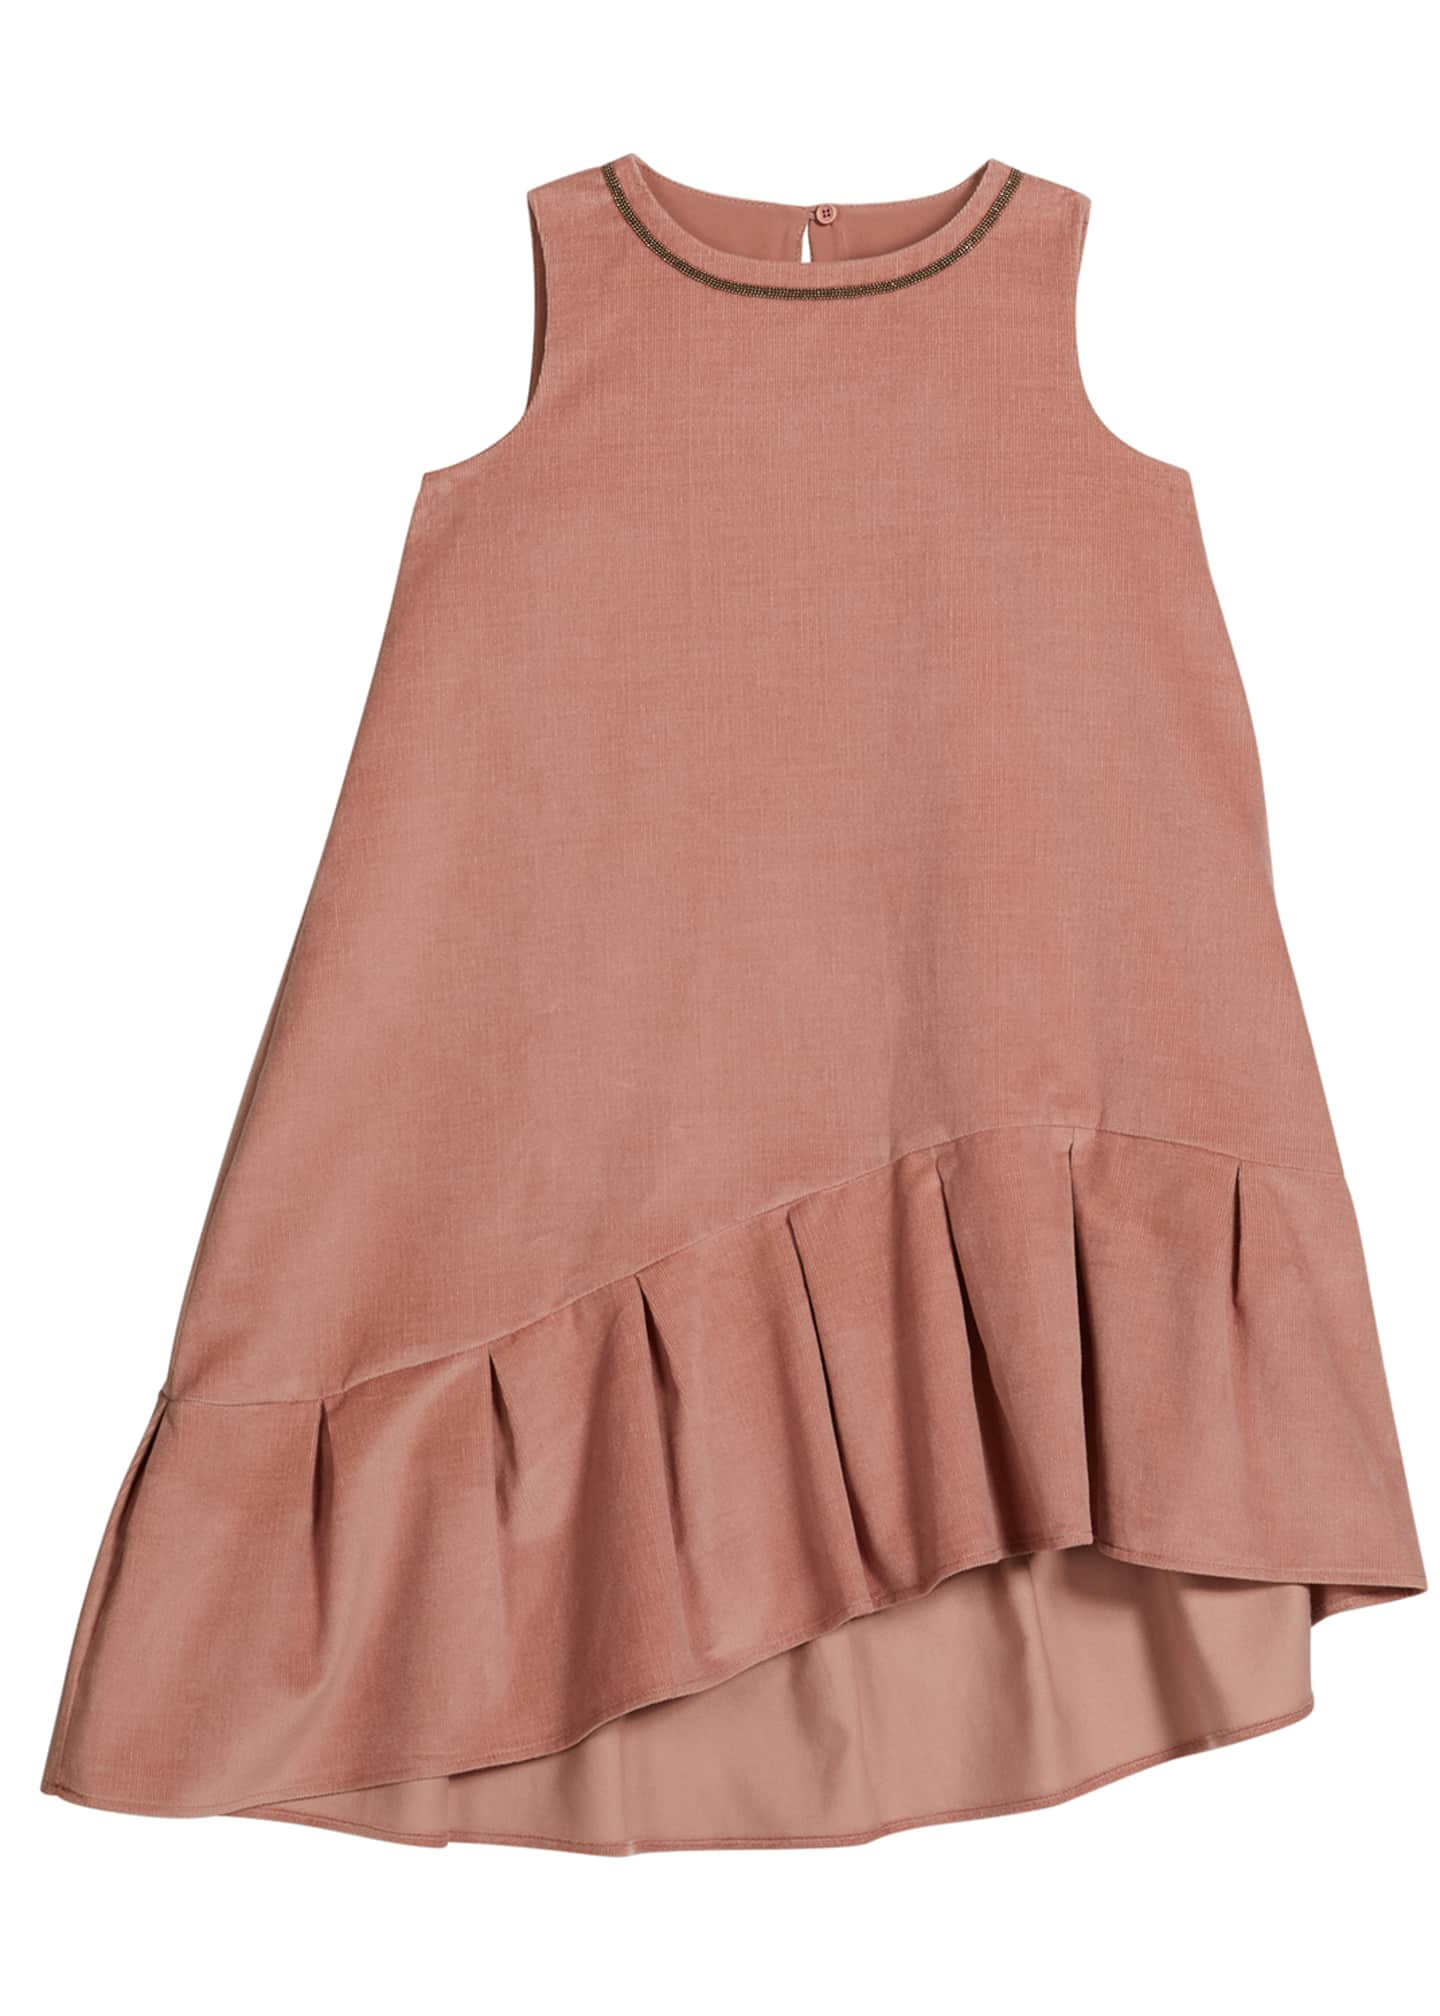 Girl's Corduroy Monili Sleeveless Dress, Size 4-6